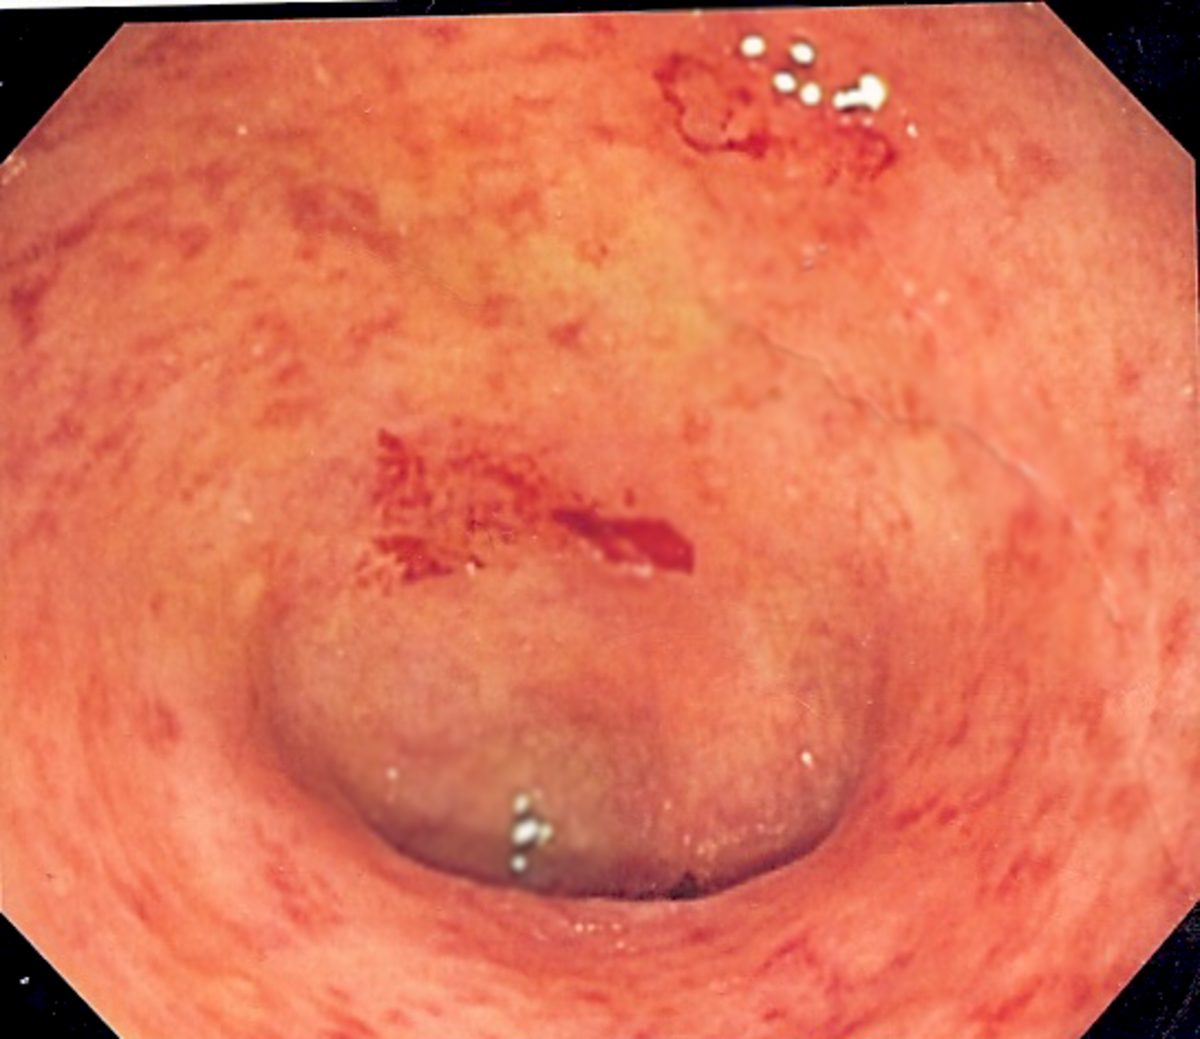 Ulcers on the lining on the large intestine.